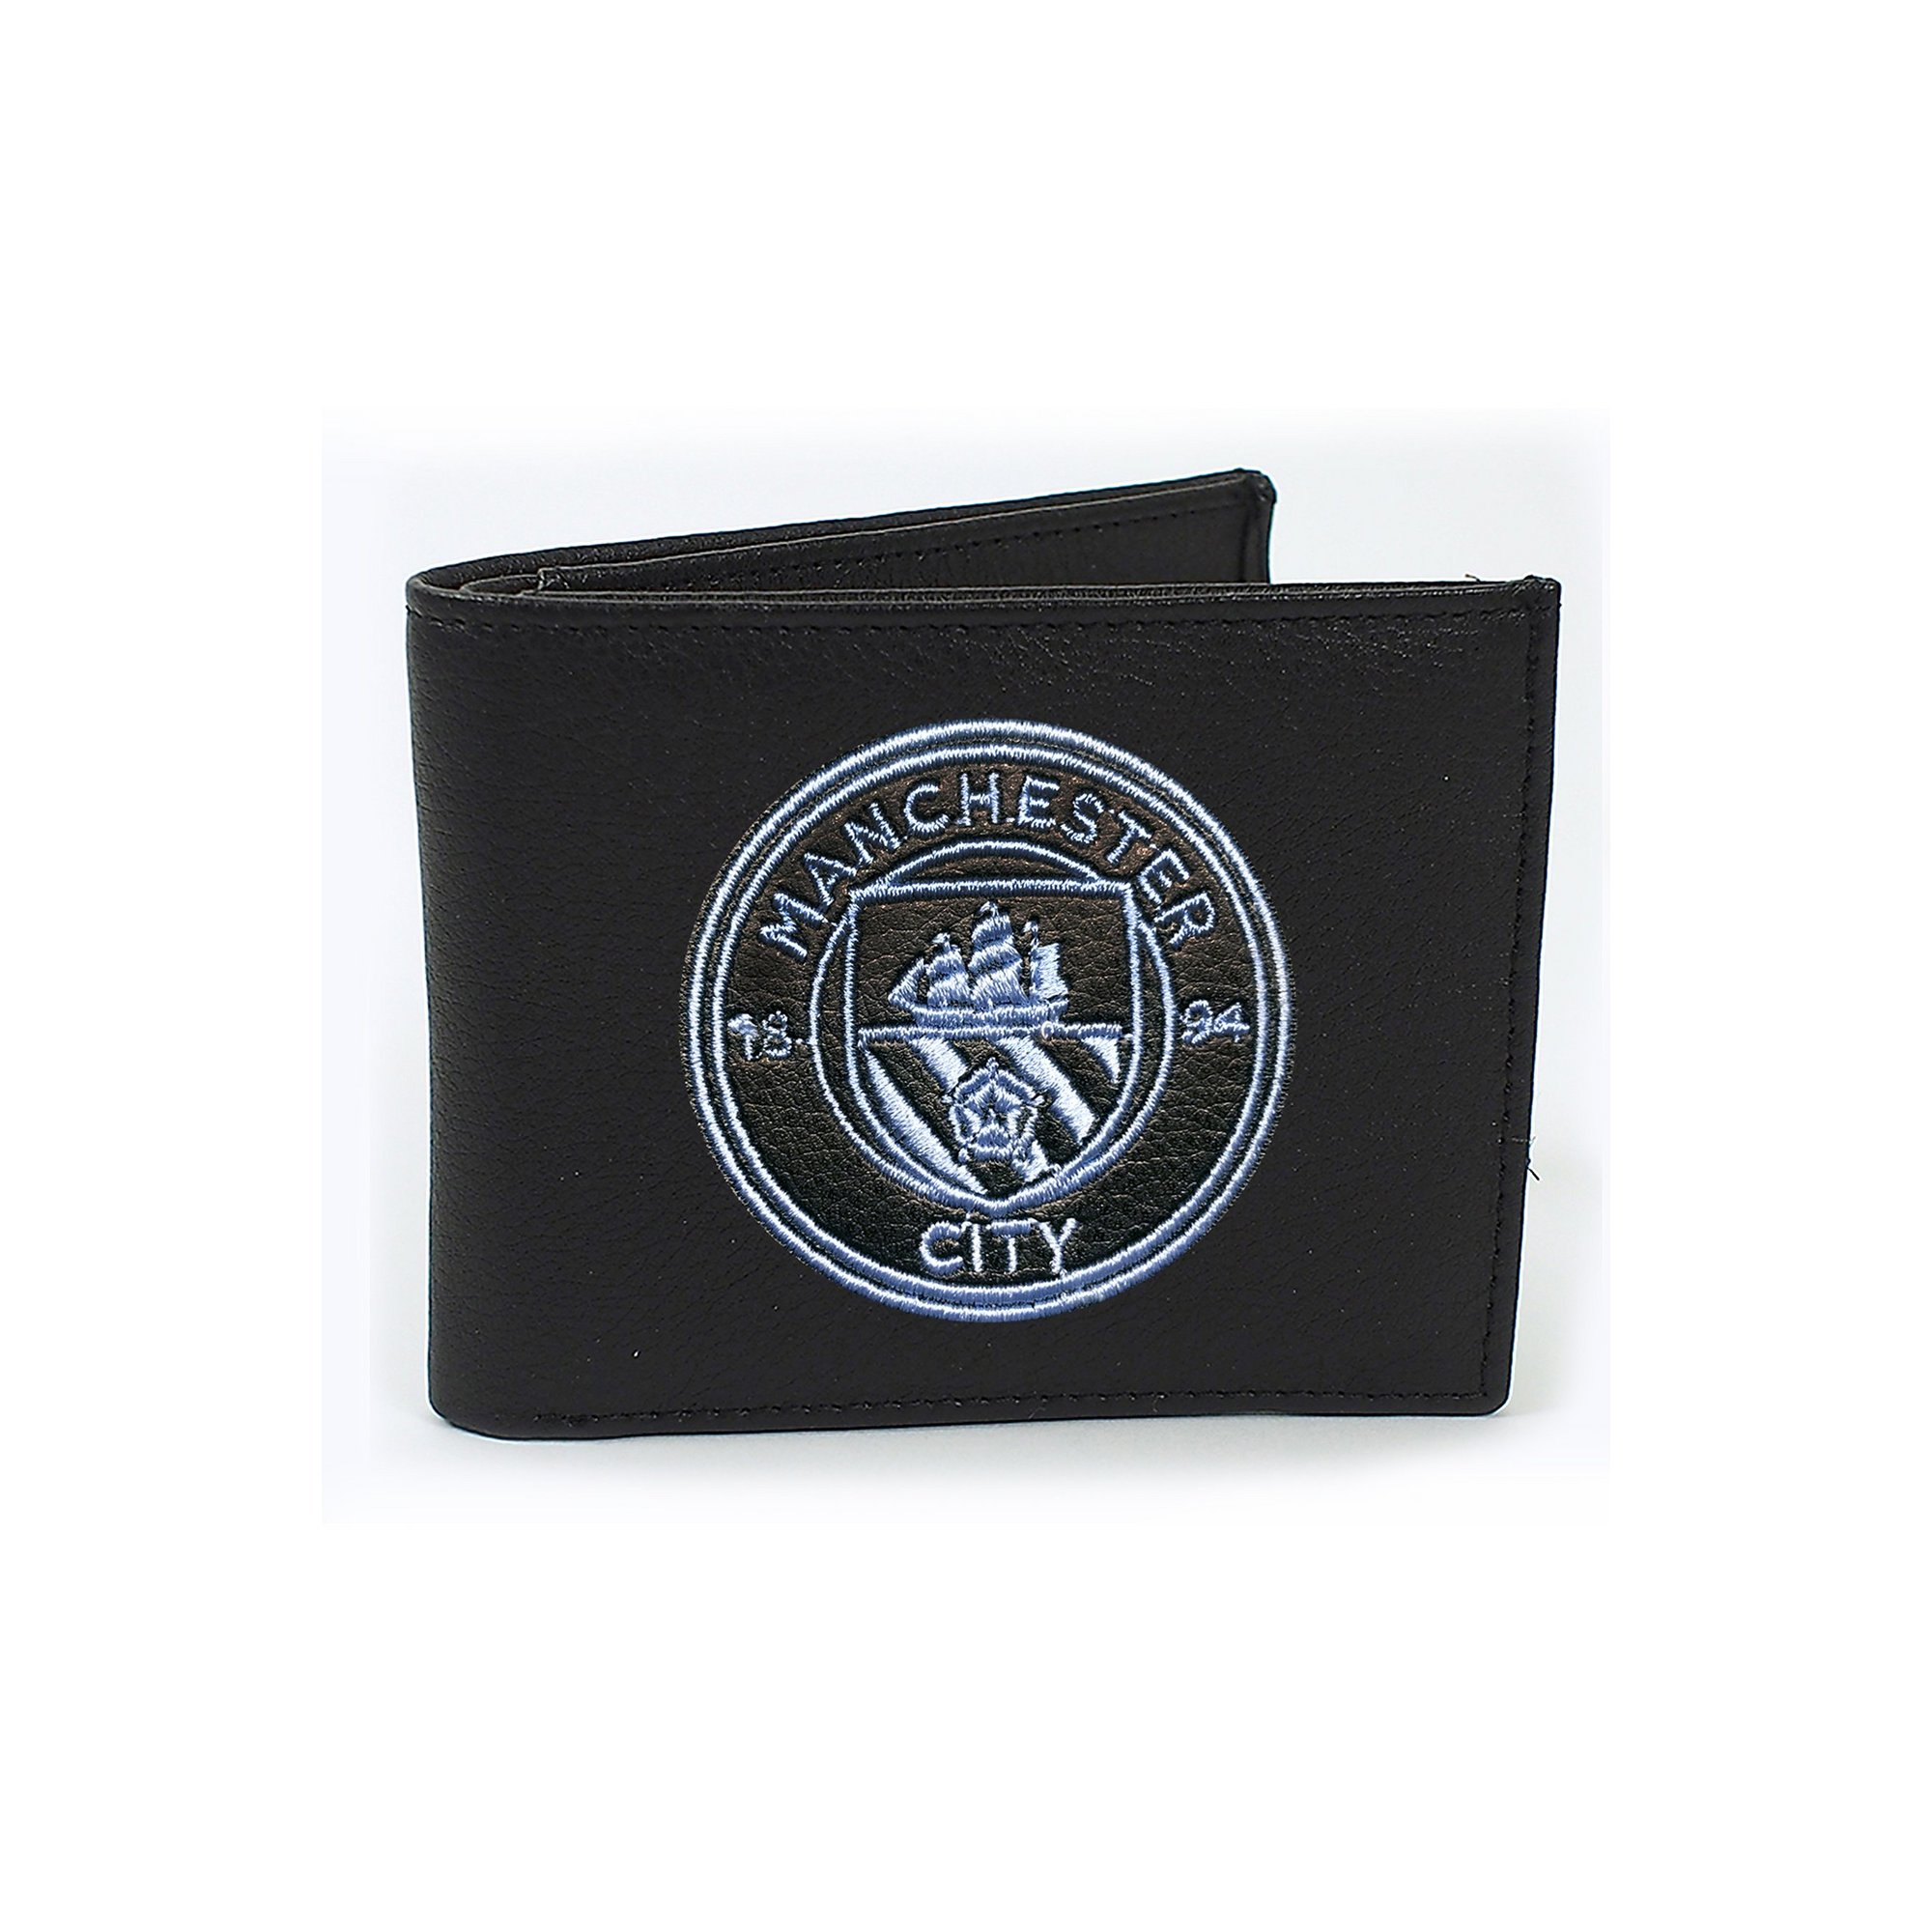 Image of Manchester City Embroidered Crest Wallet